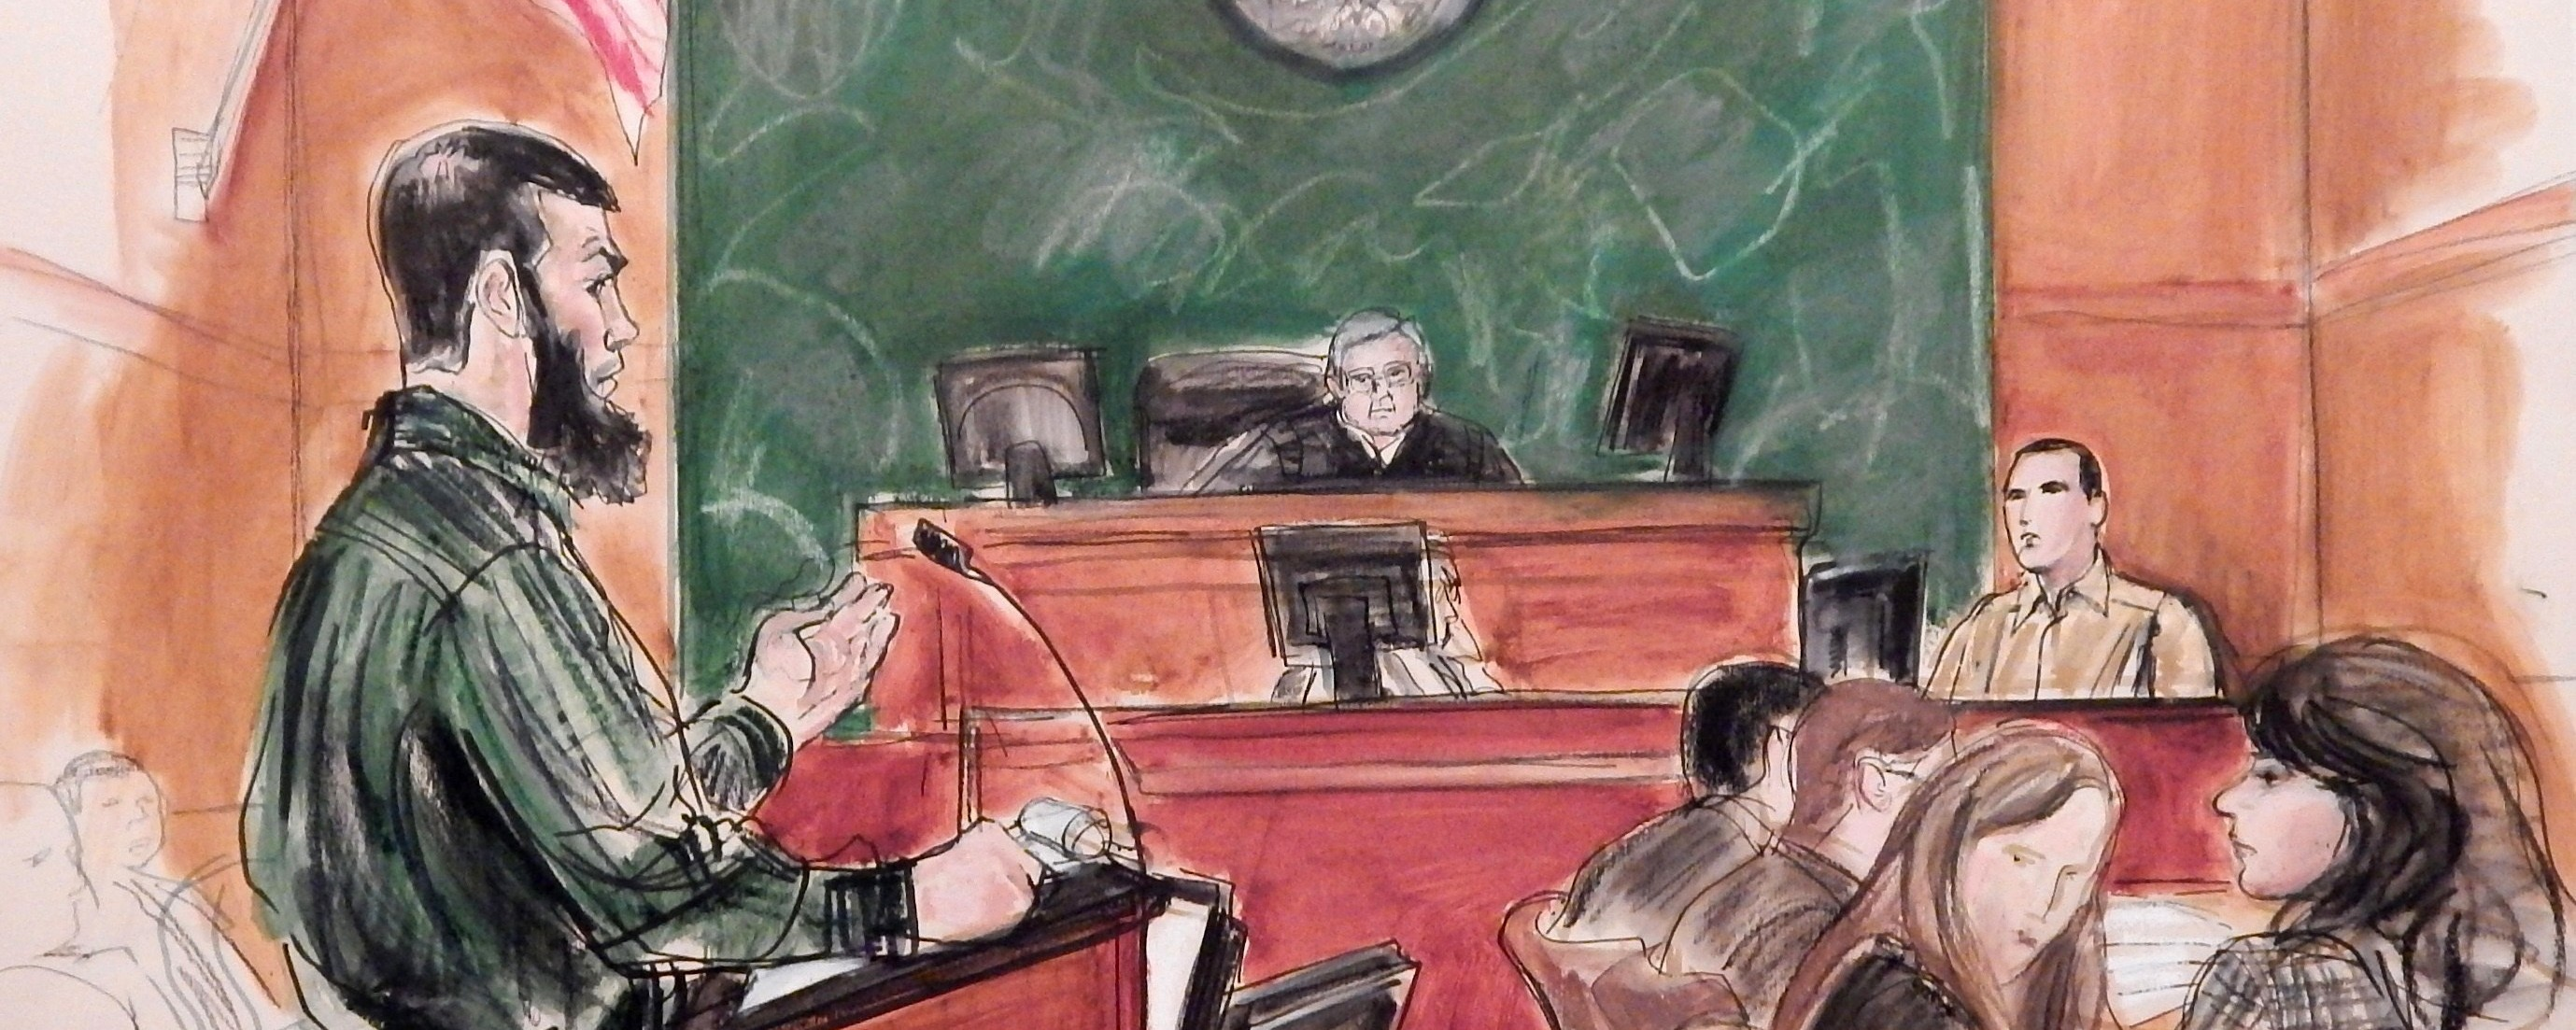 Accused Terrorist Tells Jury He Was 'Chasing Women On the Internet' — Not Planning an Attack